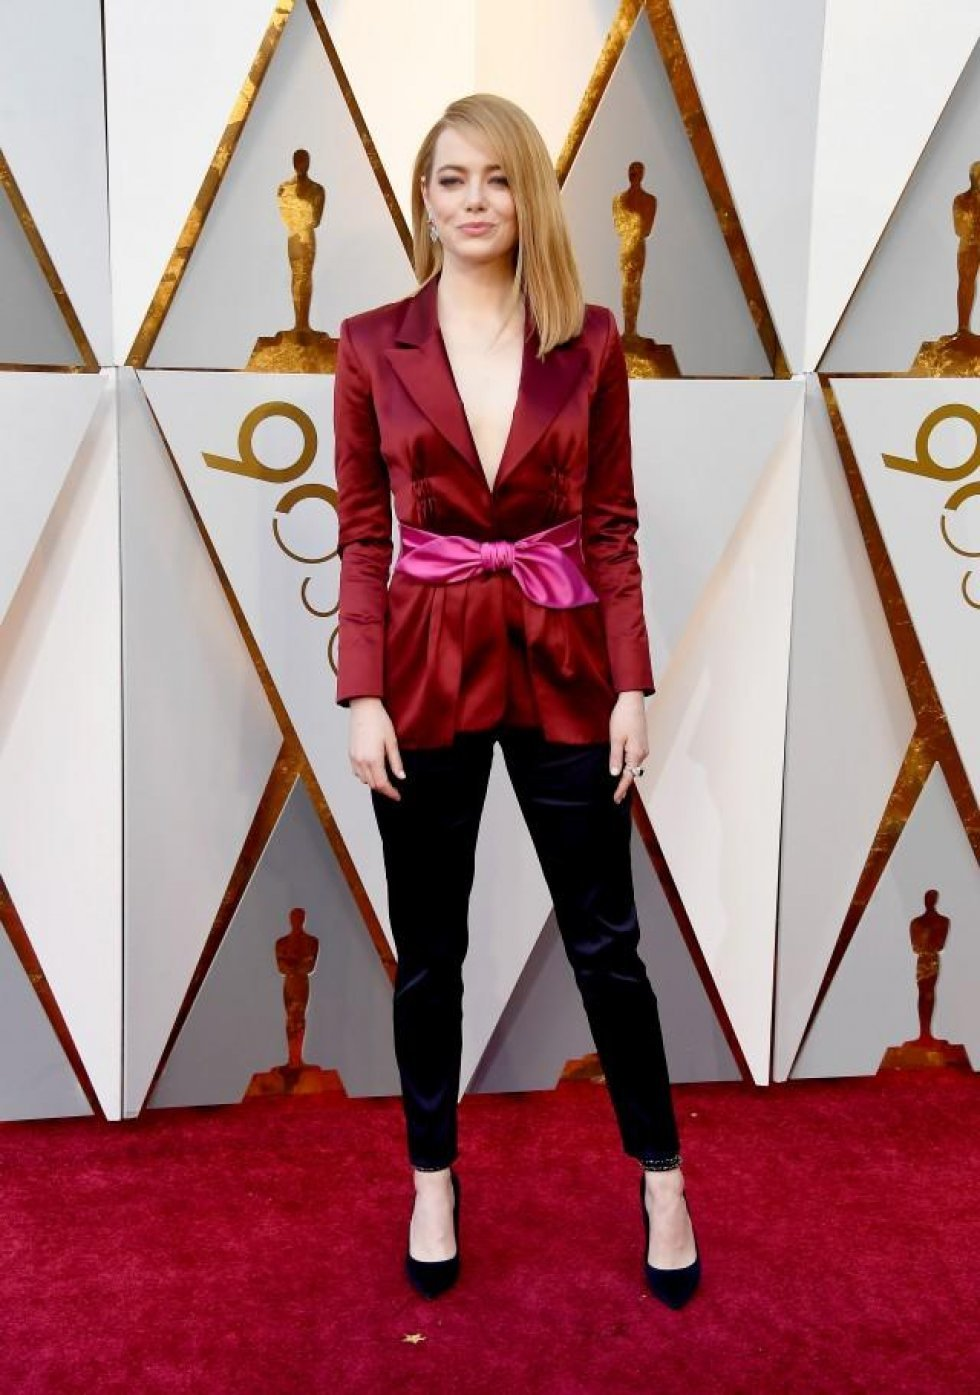 Entertainment Tonight - Oscars Red Carpet Fashion: Hvilken stjerne bar hvad?